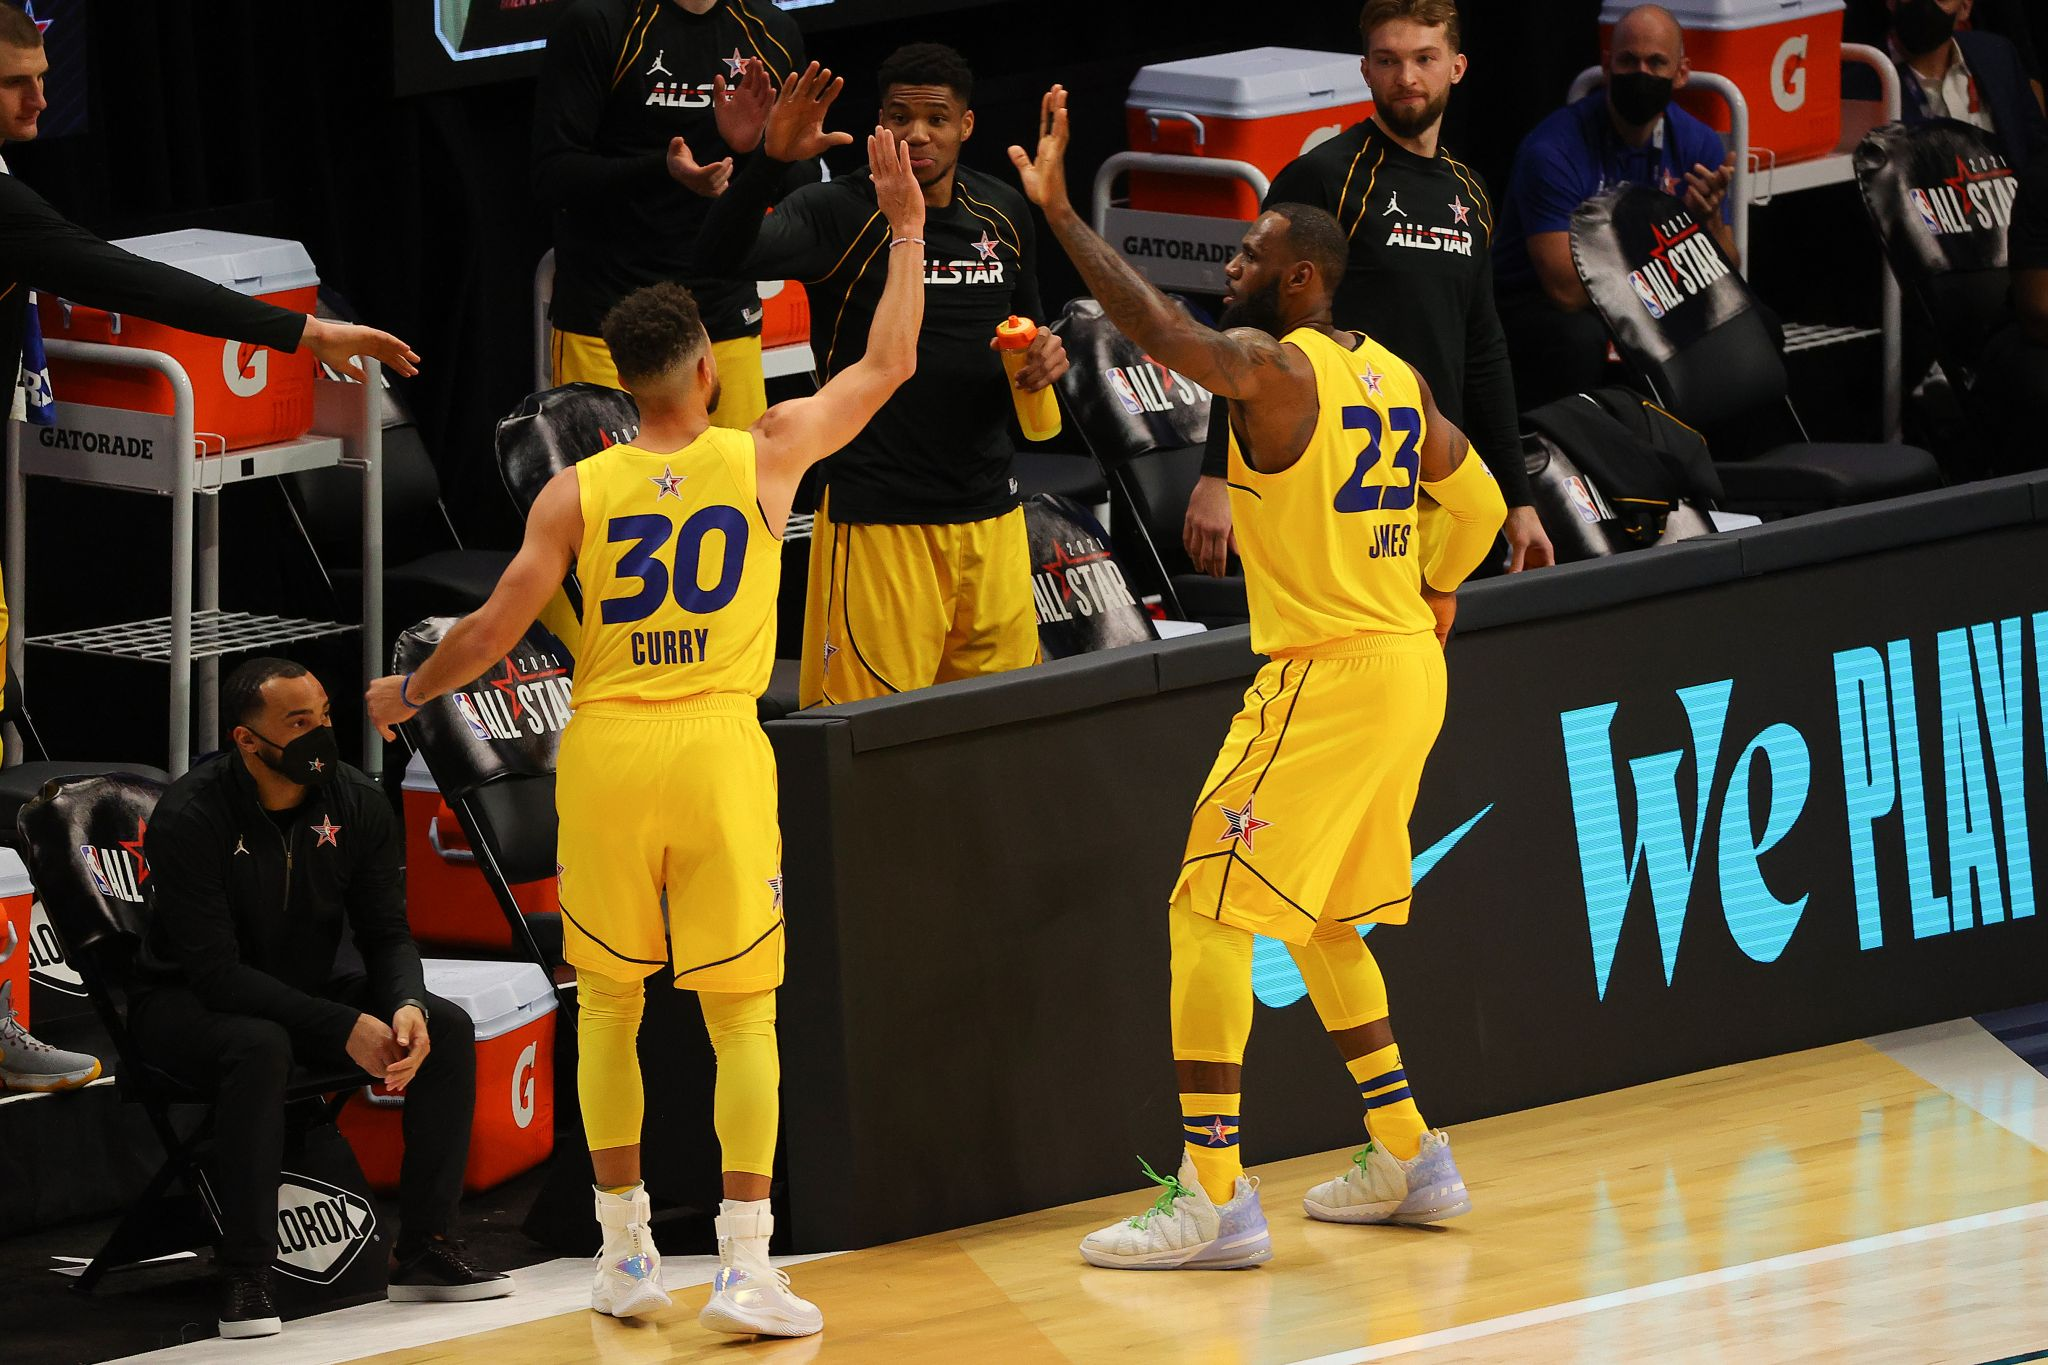 LeBron James offers a glowing review of playing with Warriors' Stephen Curry in NBA All-Star Game - SF Gate